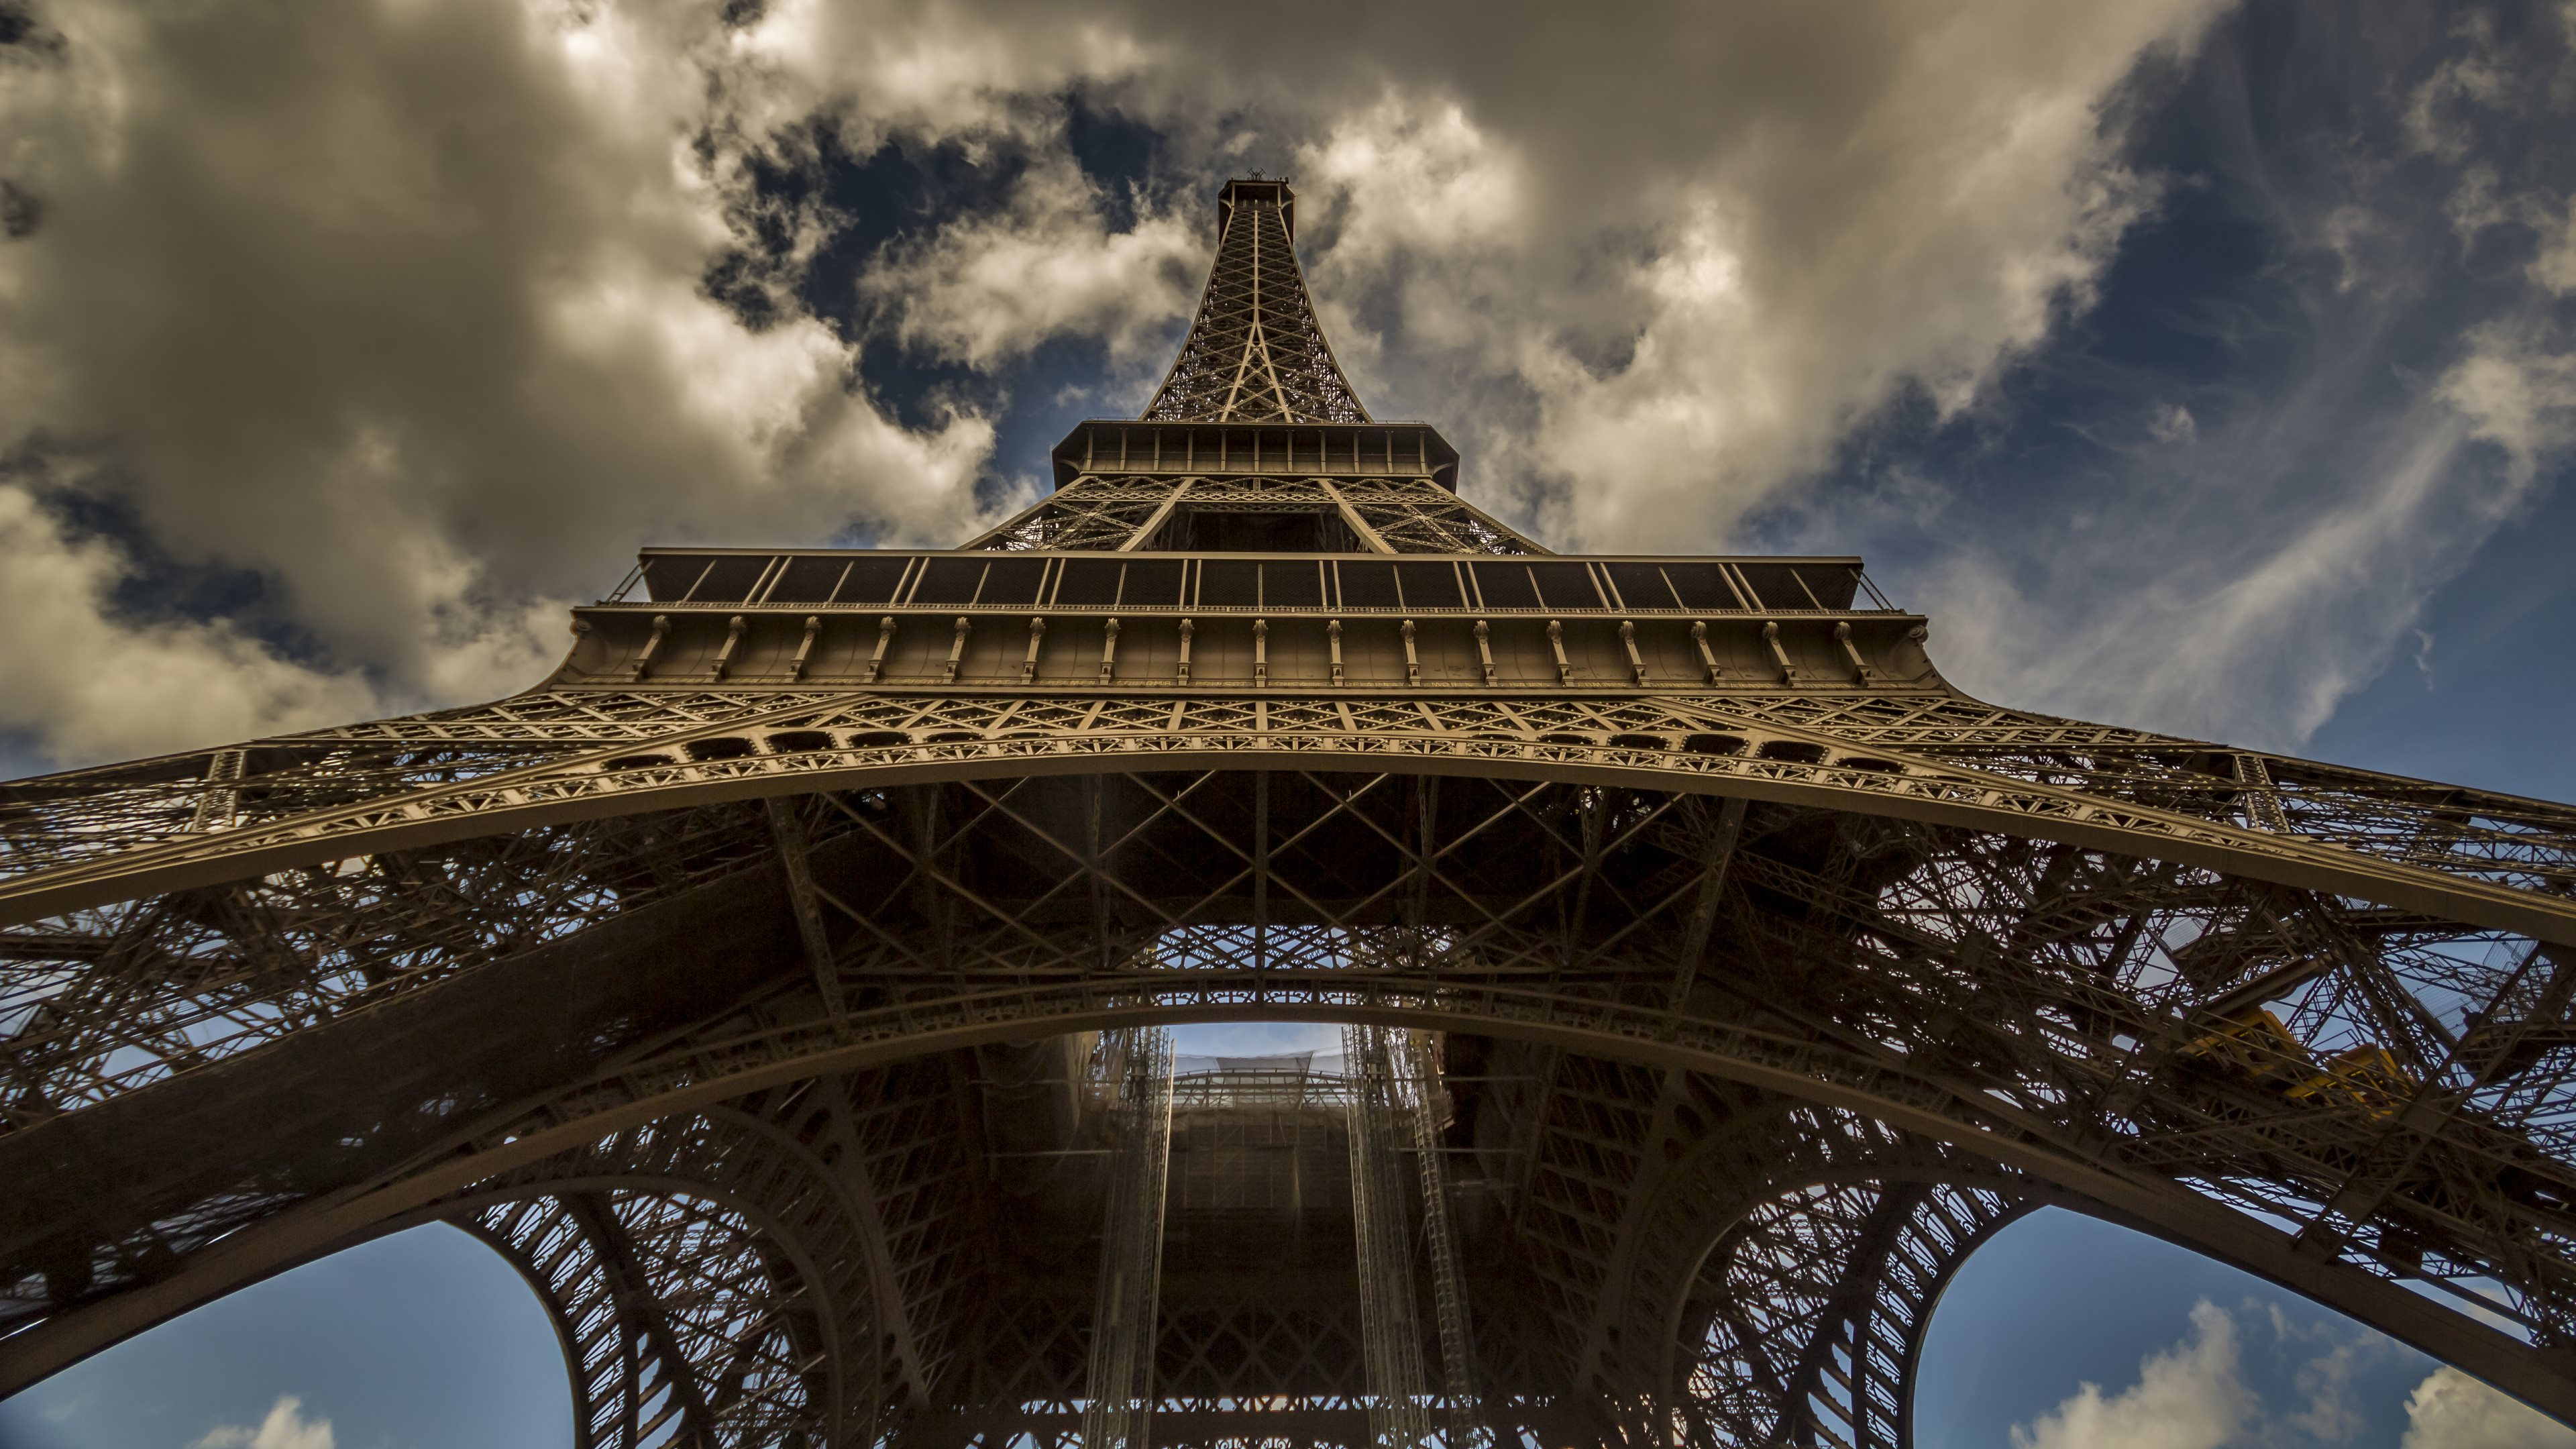 Eiffel Tower Wallpaper Collection For Free Download